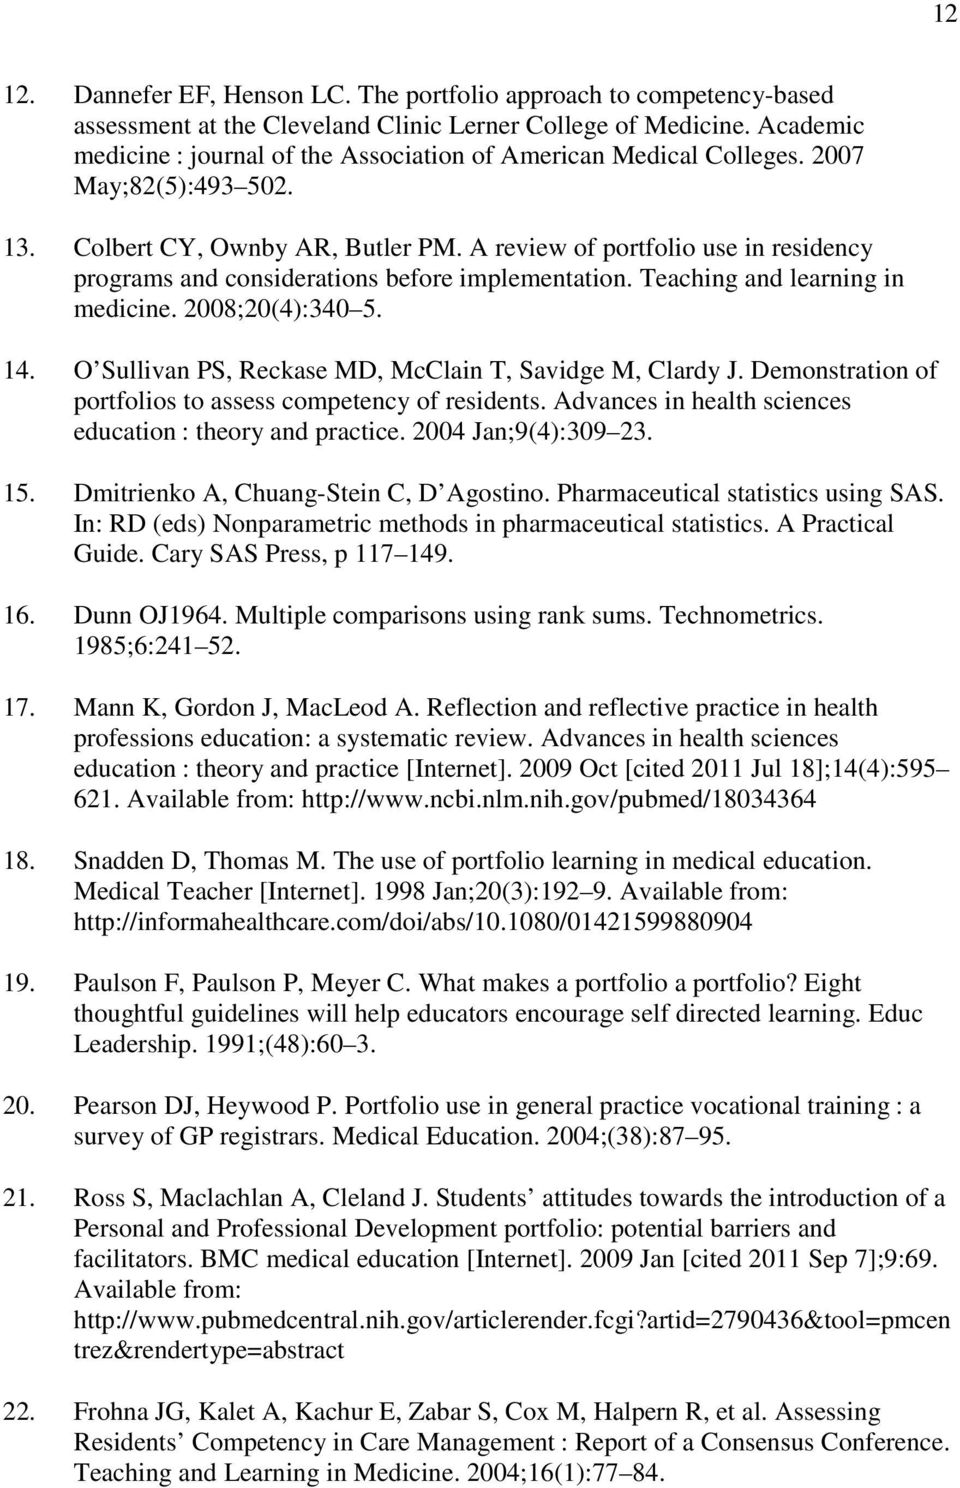 A review of portfolio use in residency programs and considerations before implementation. Teaching and learning in medicine. 2008;20(4):340 5. 14.